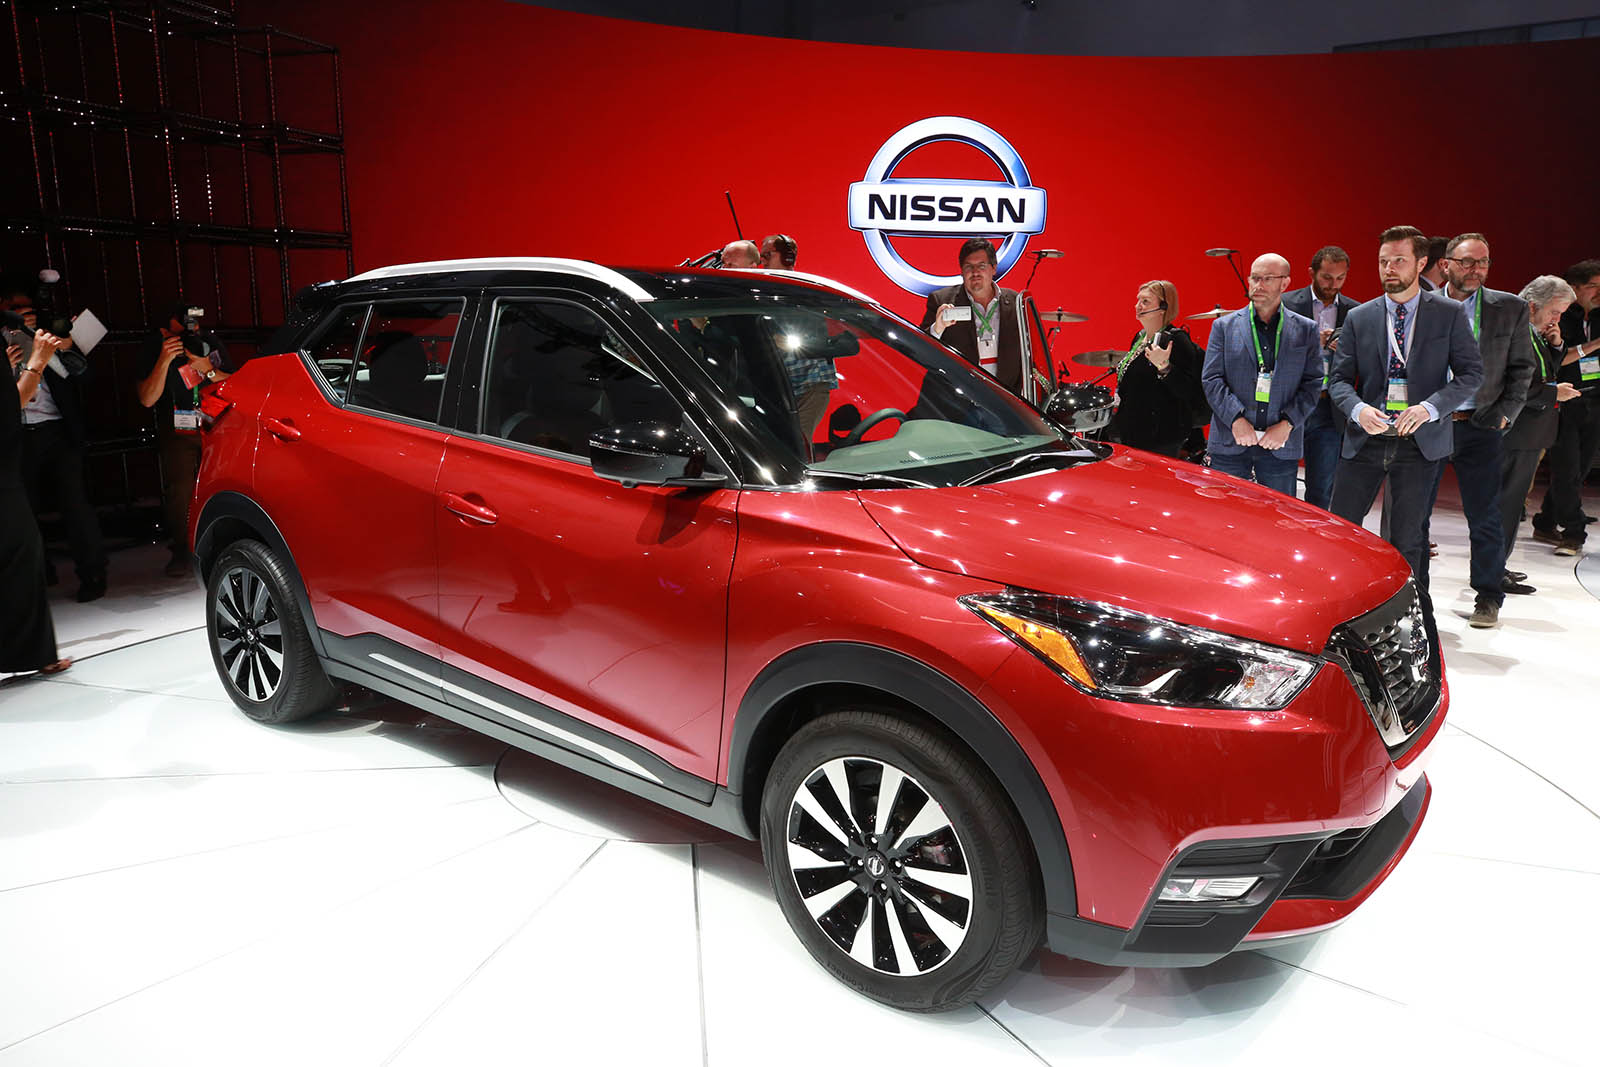 2018 Nissan Kicks reveal